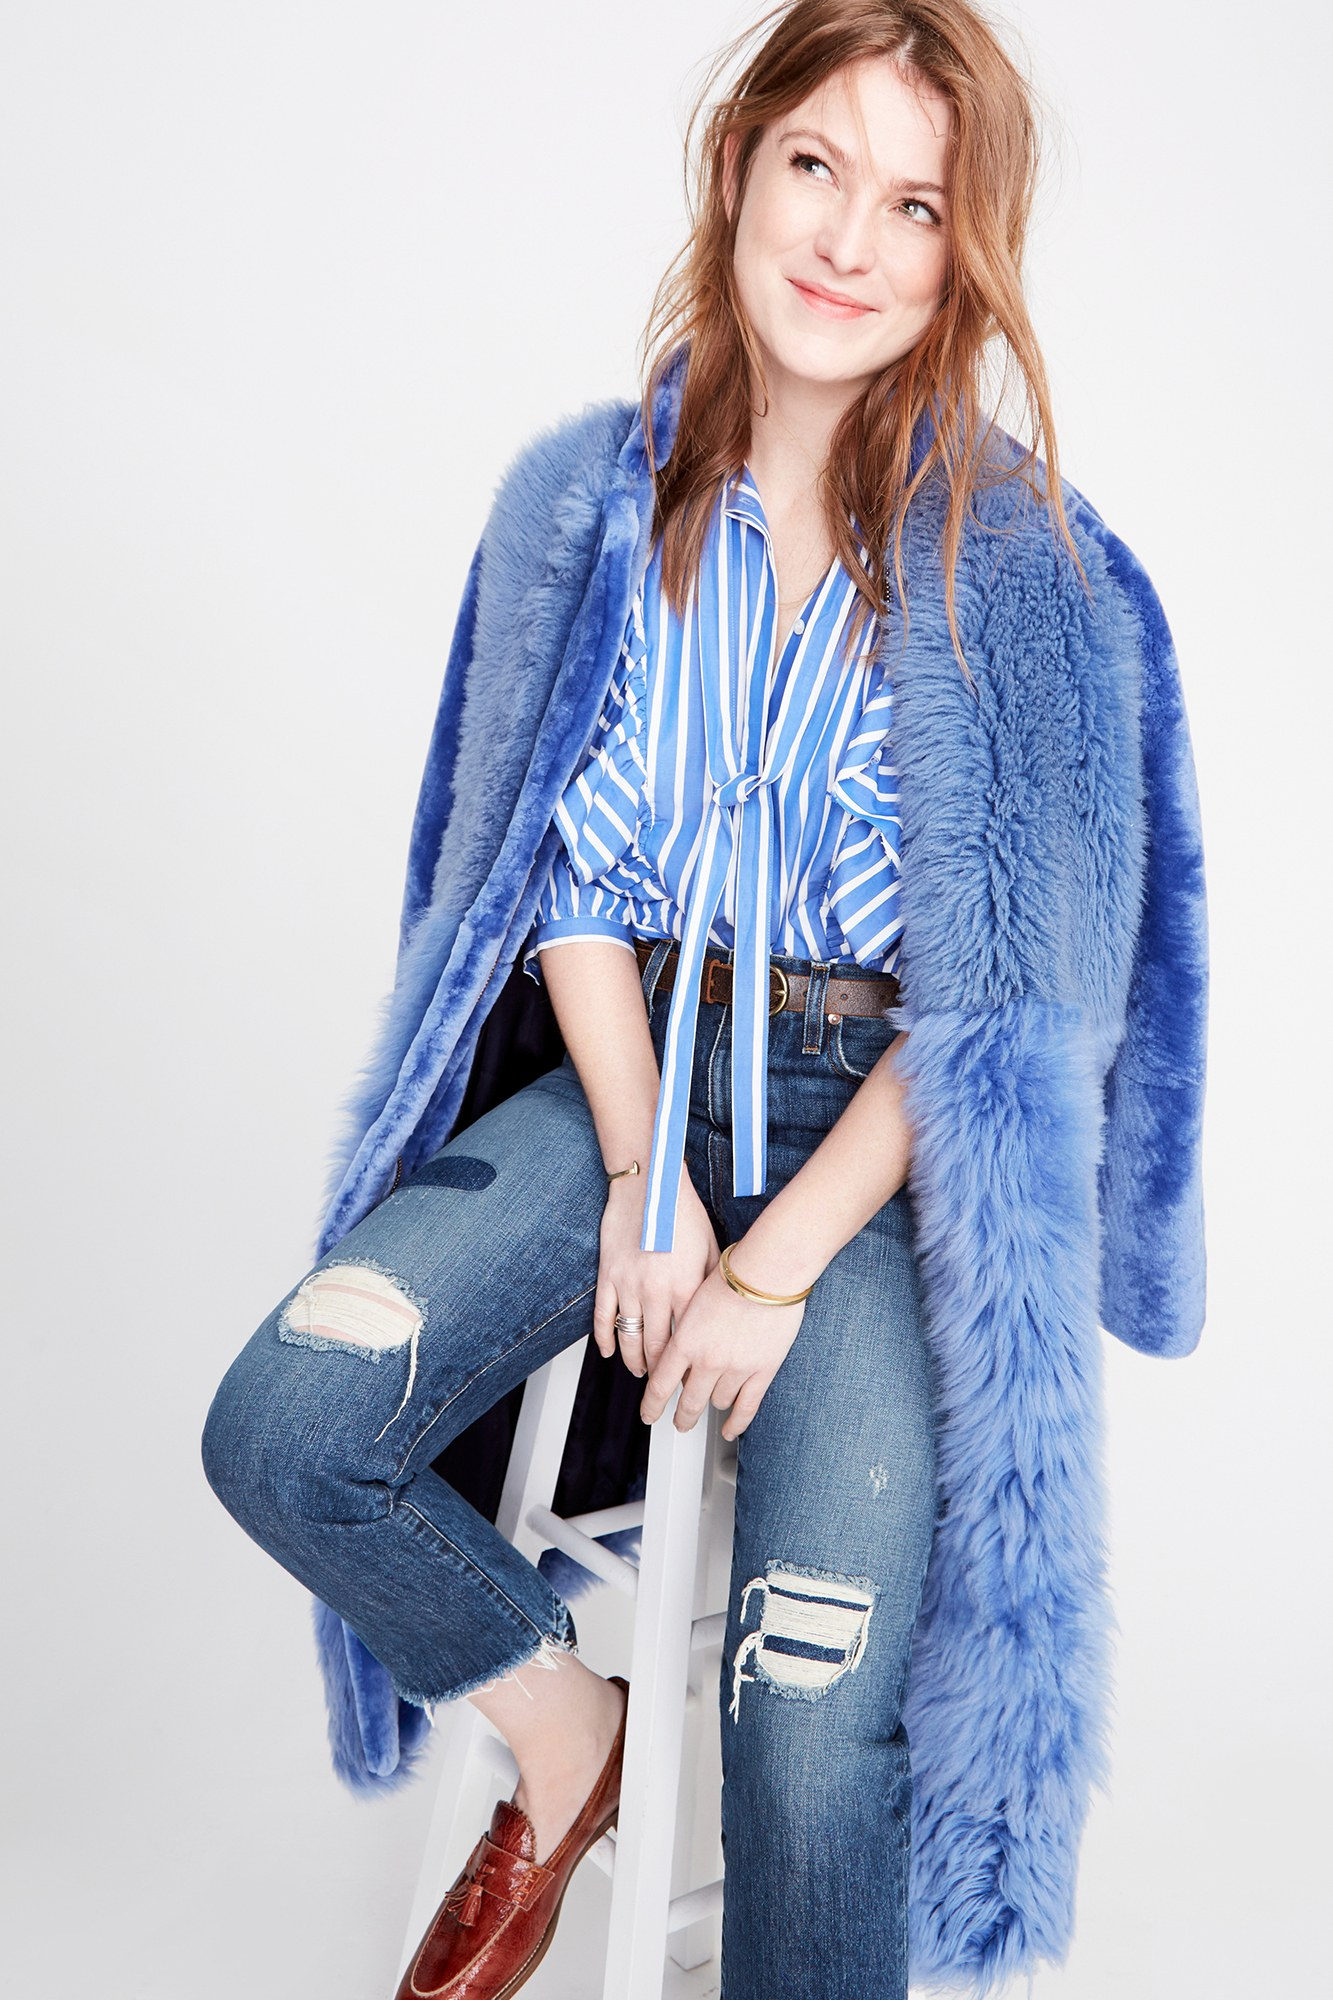 Fashion style Fall j.crew denim collection for woman